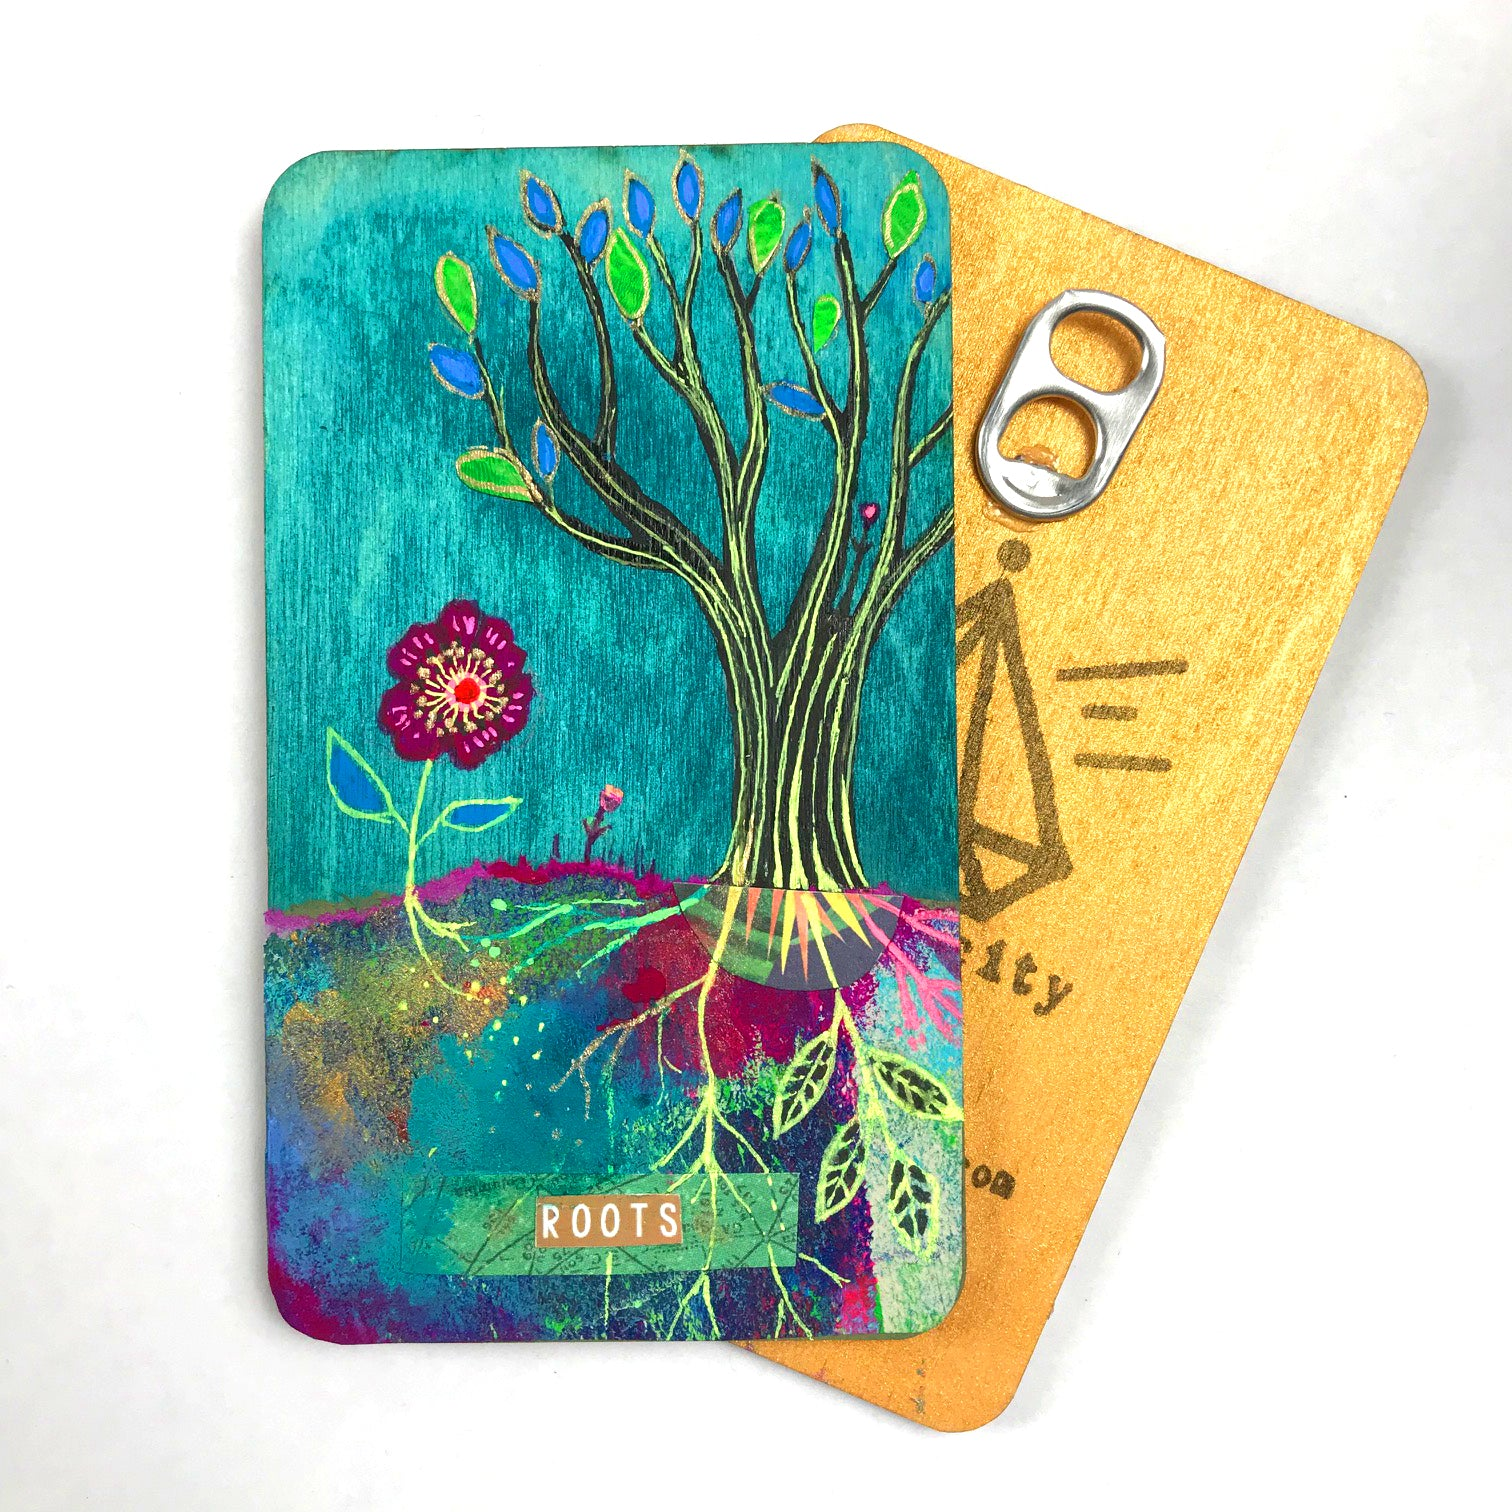 Roots - Hand Painted Wooden Oracle Card